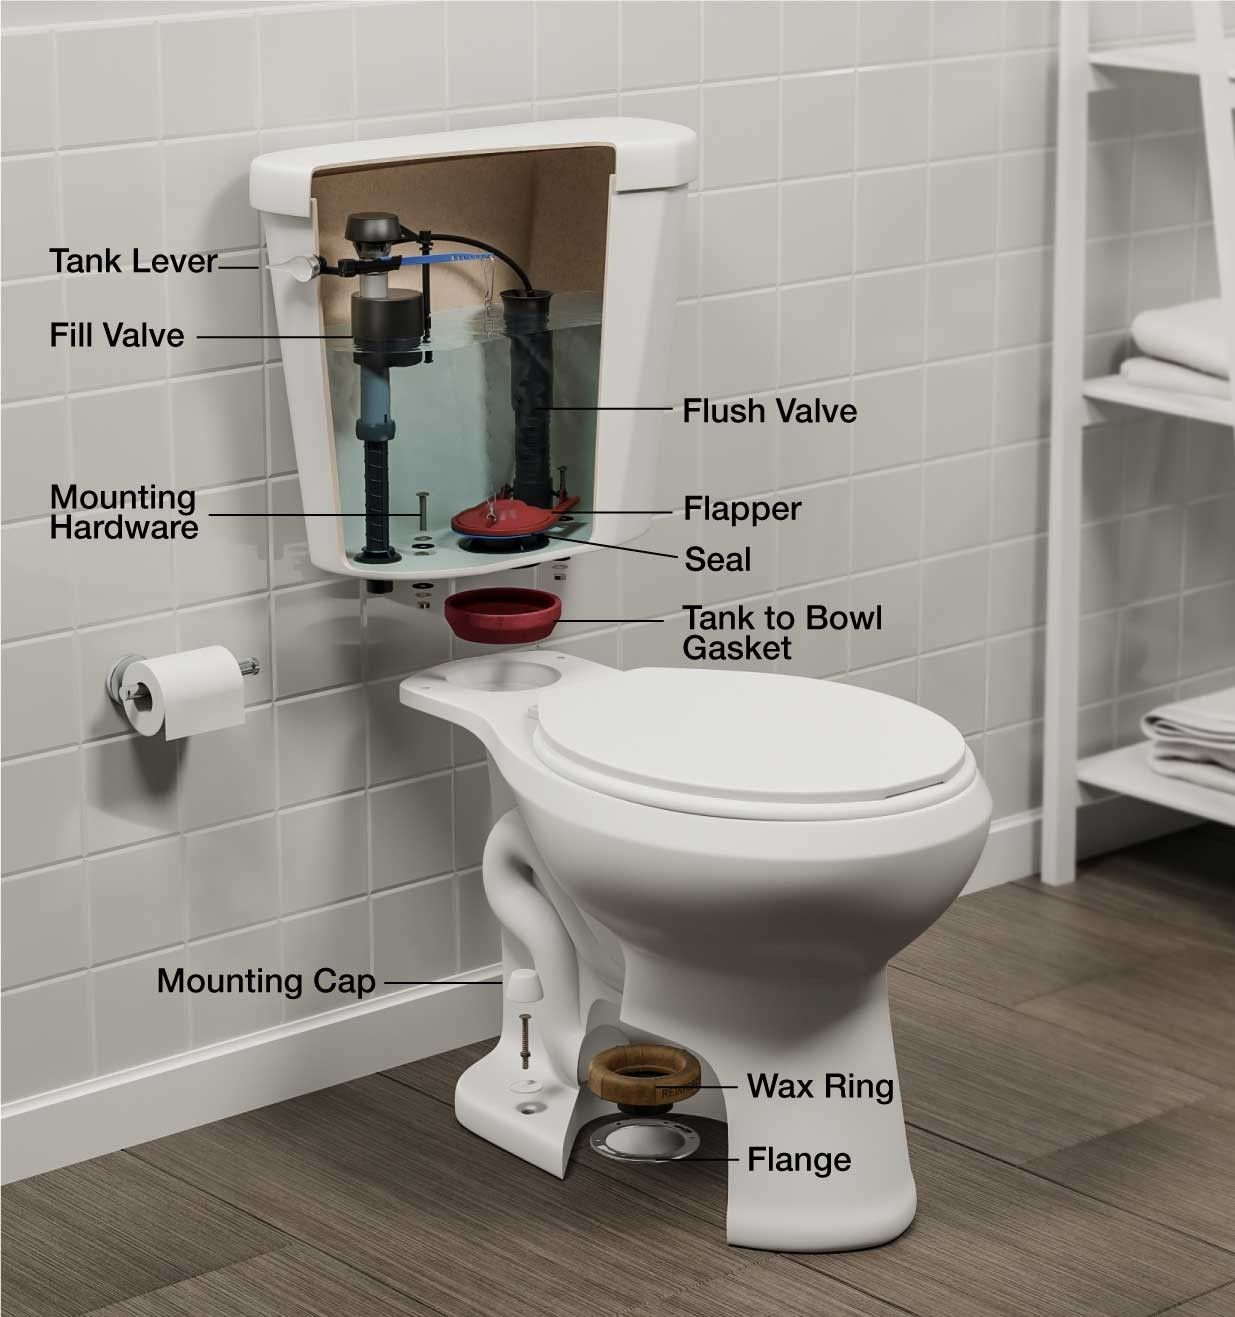 Pin By Projecttigerlisa On Eco Connecting Toilet And Sink Plumbing Repair Bathroom Essentials Plumbing